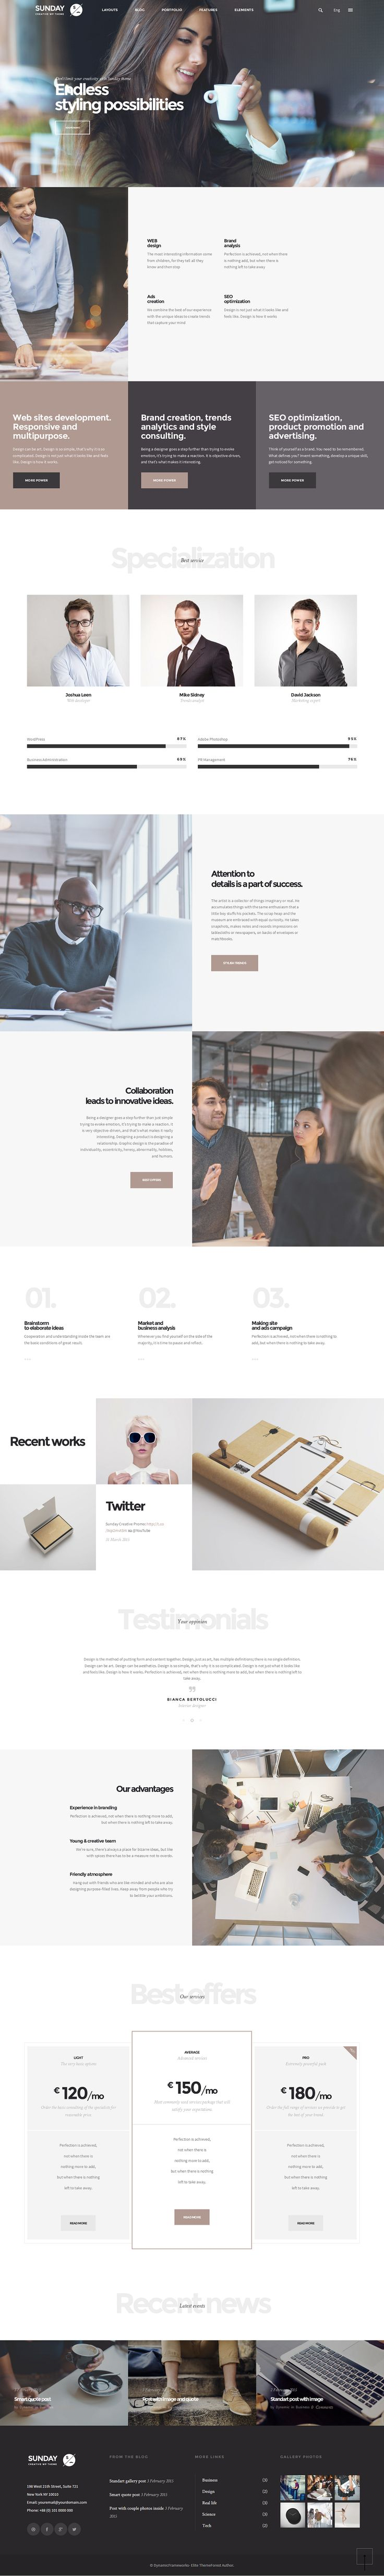 Clean & Simple WordPress Themes #2015